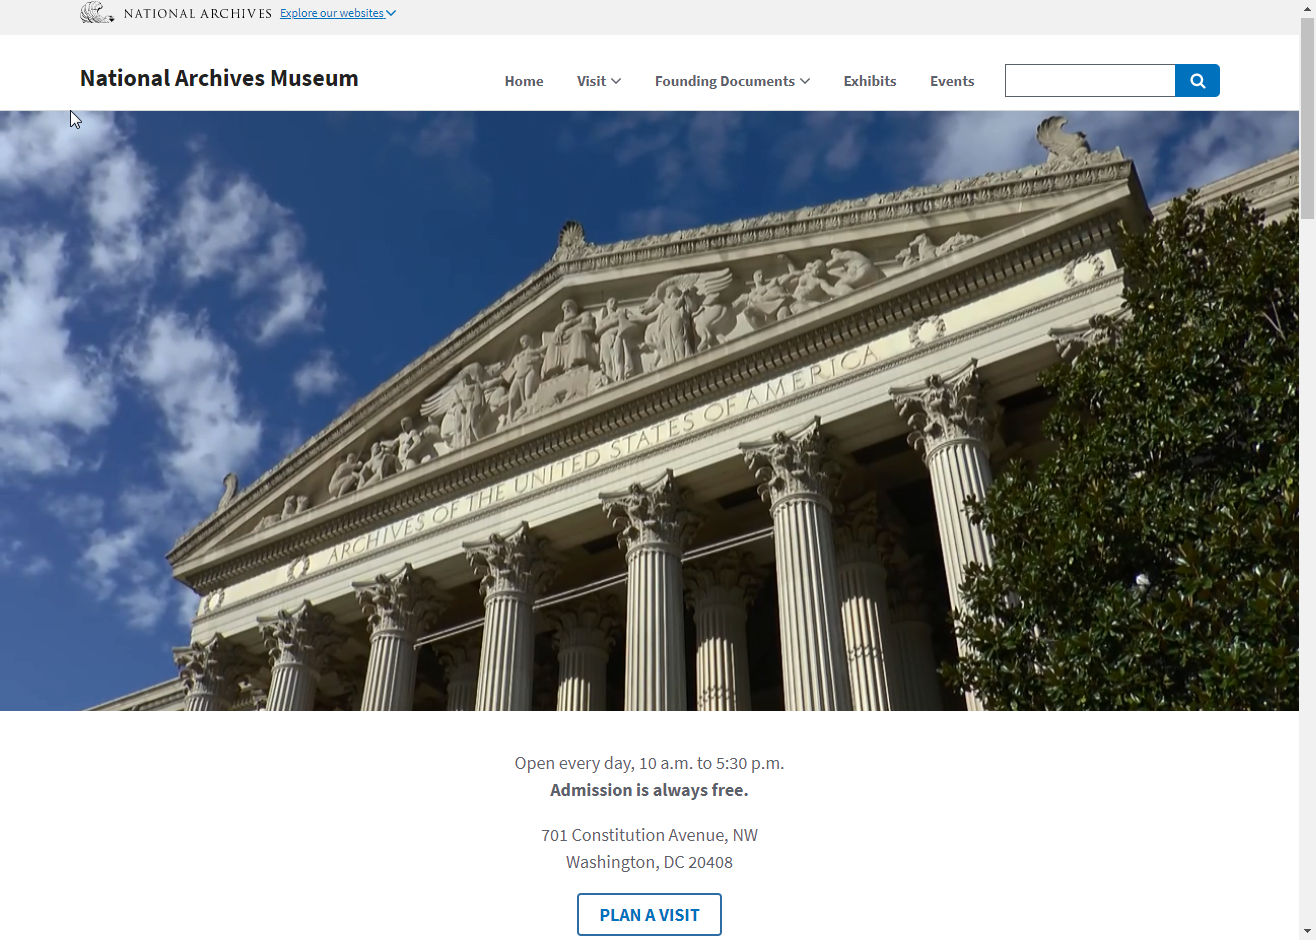 Redesigned Museum homepage screenshot, showing facade of National Archives building in Washington, DC, site menus, and address and visiting hours.